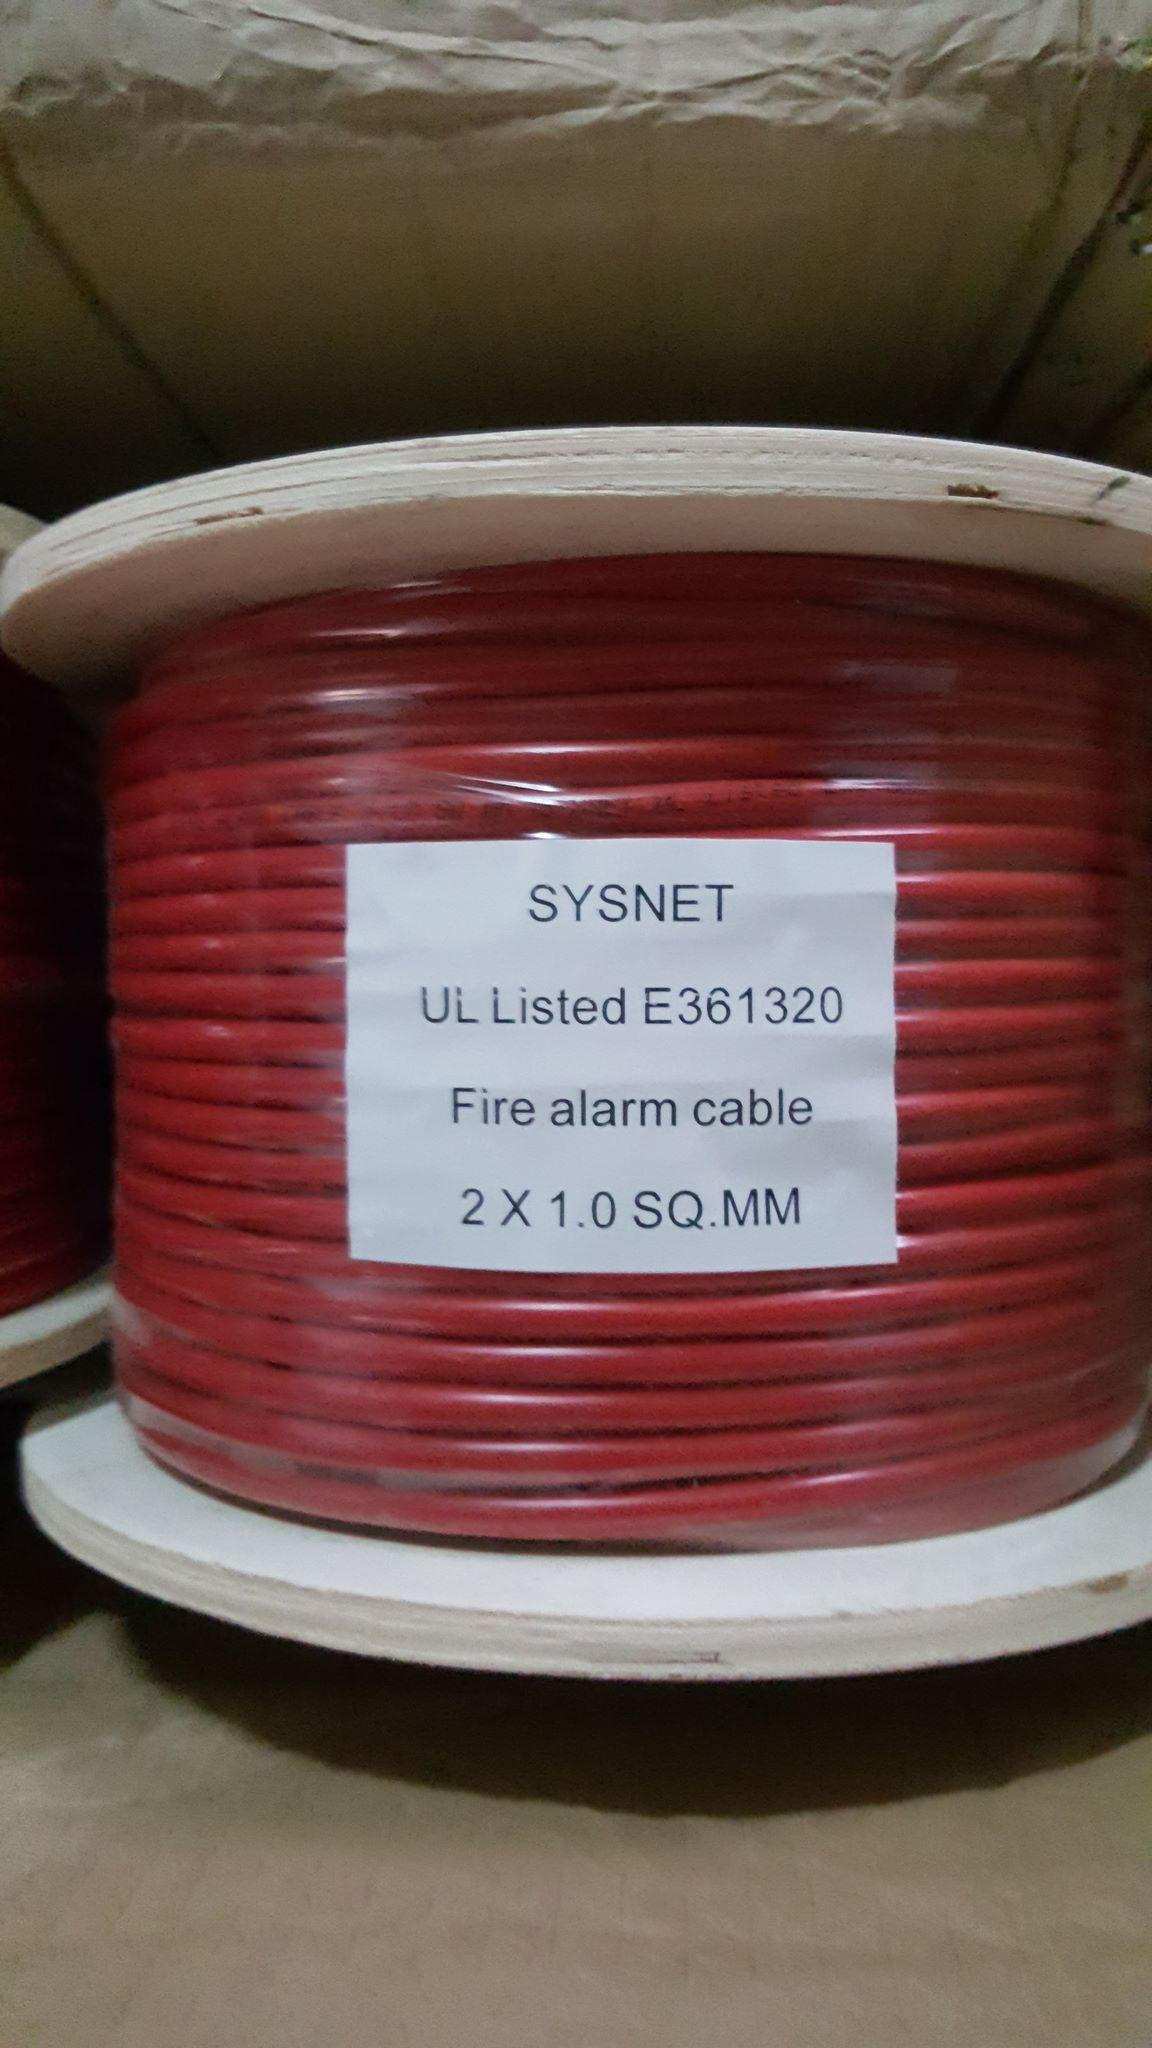 hight resolution of 2000 php fire alarm cable sysnet brand